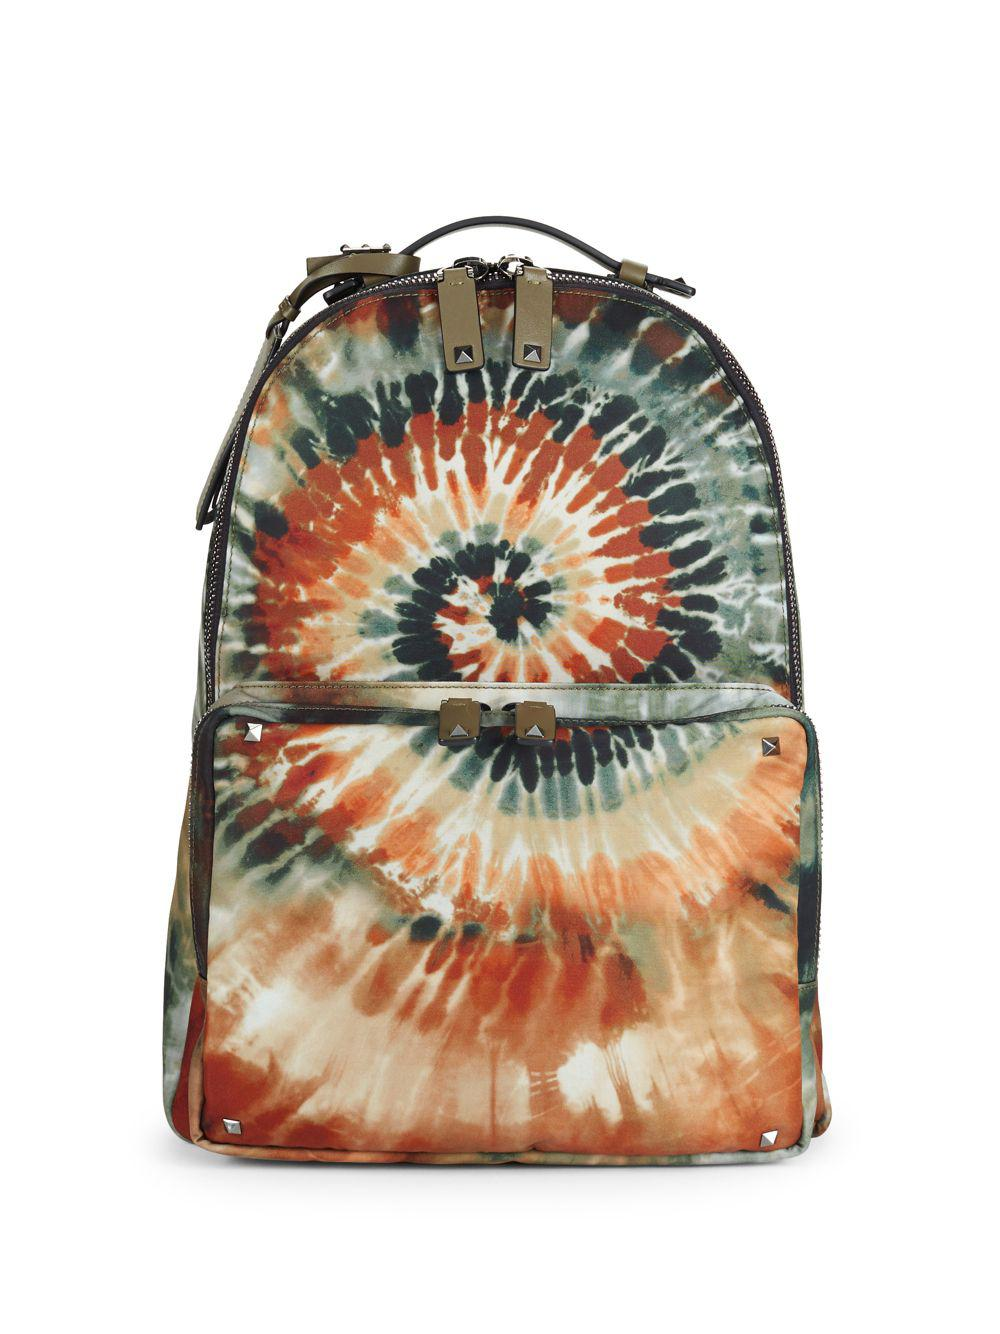 7fa21a7868 Lyst - Valentino Tie-dye Nylon Backpack